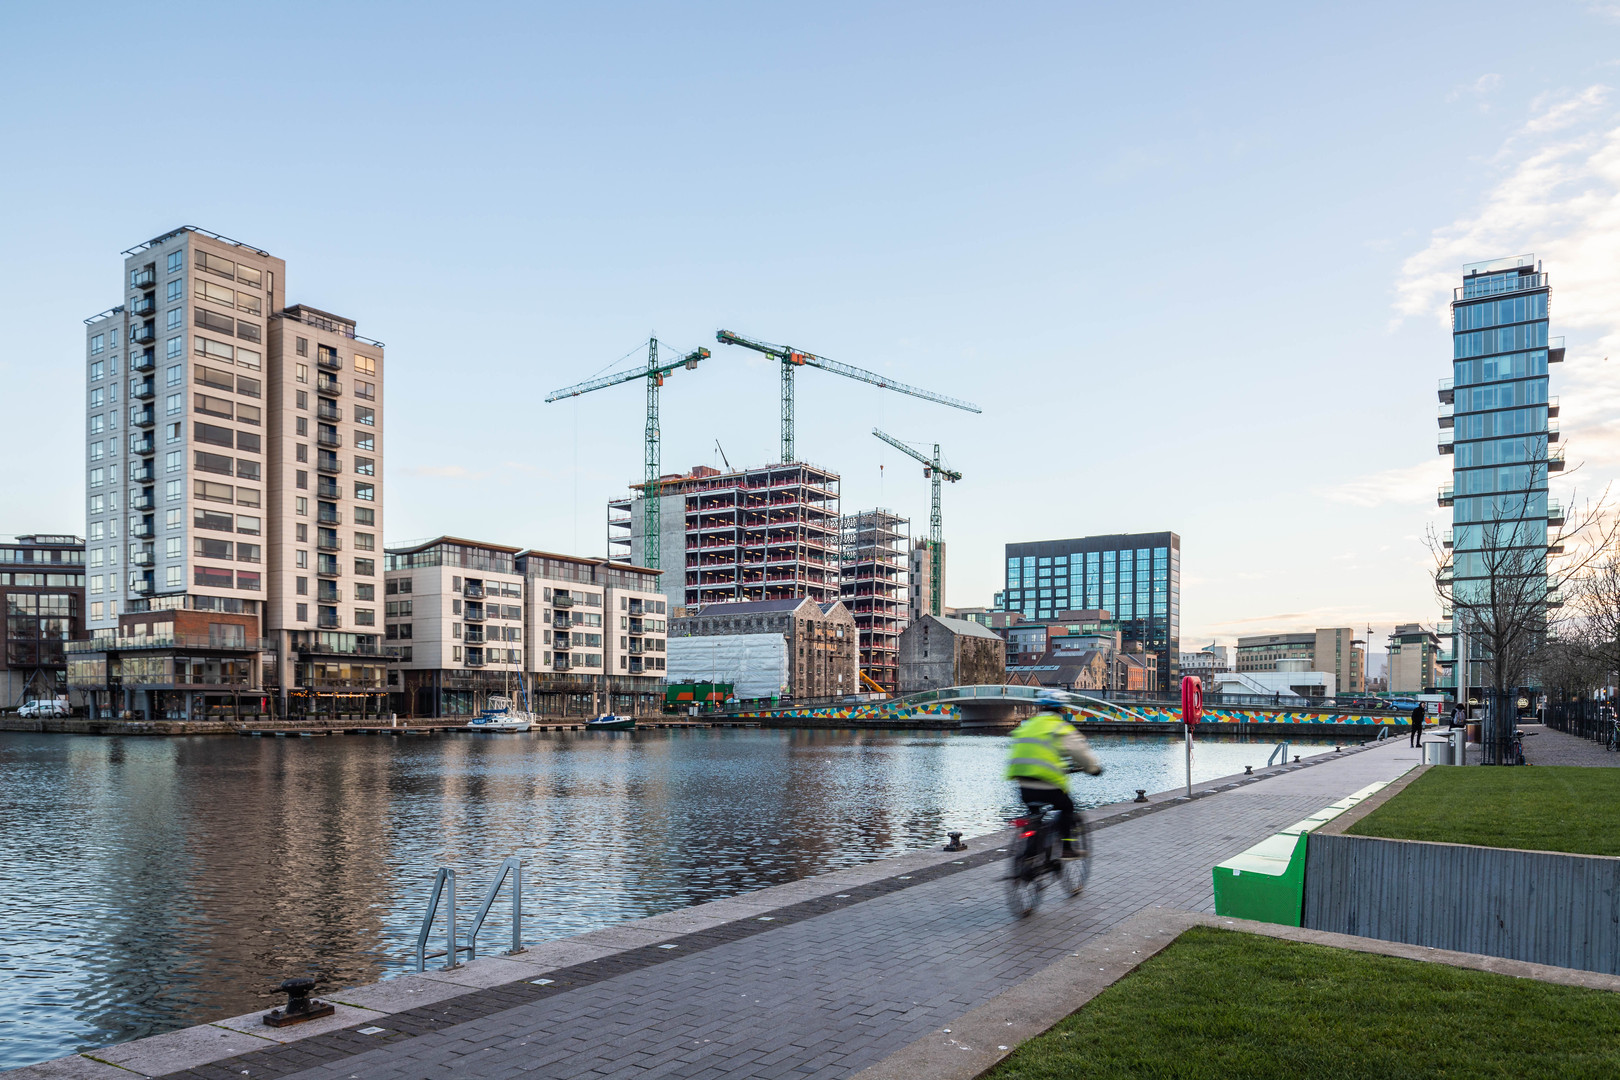 A man cycles along the Grand Canal Dock with Millenium Tower, Boland Mills, Montevetro and Alto vetro in the background